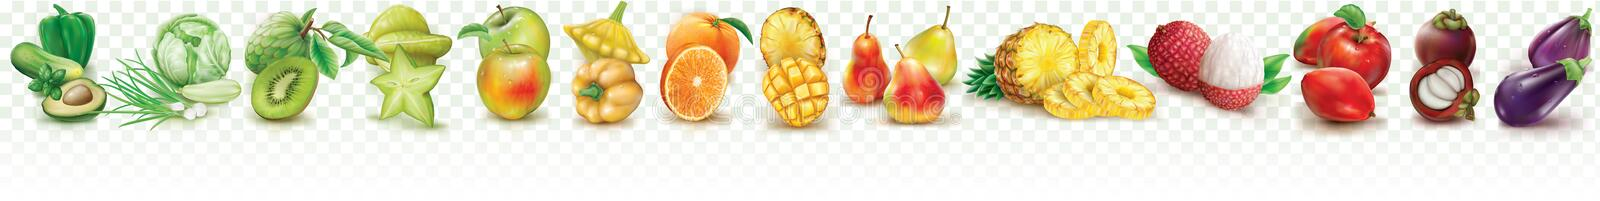 Colorful set fruits and vegetables. On a transparent background. Vector illustration stock illustration